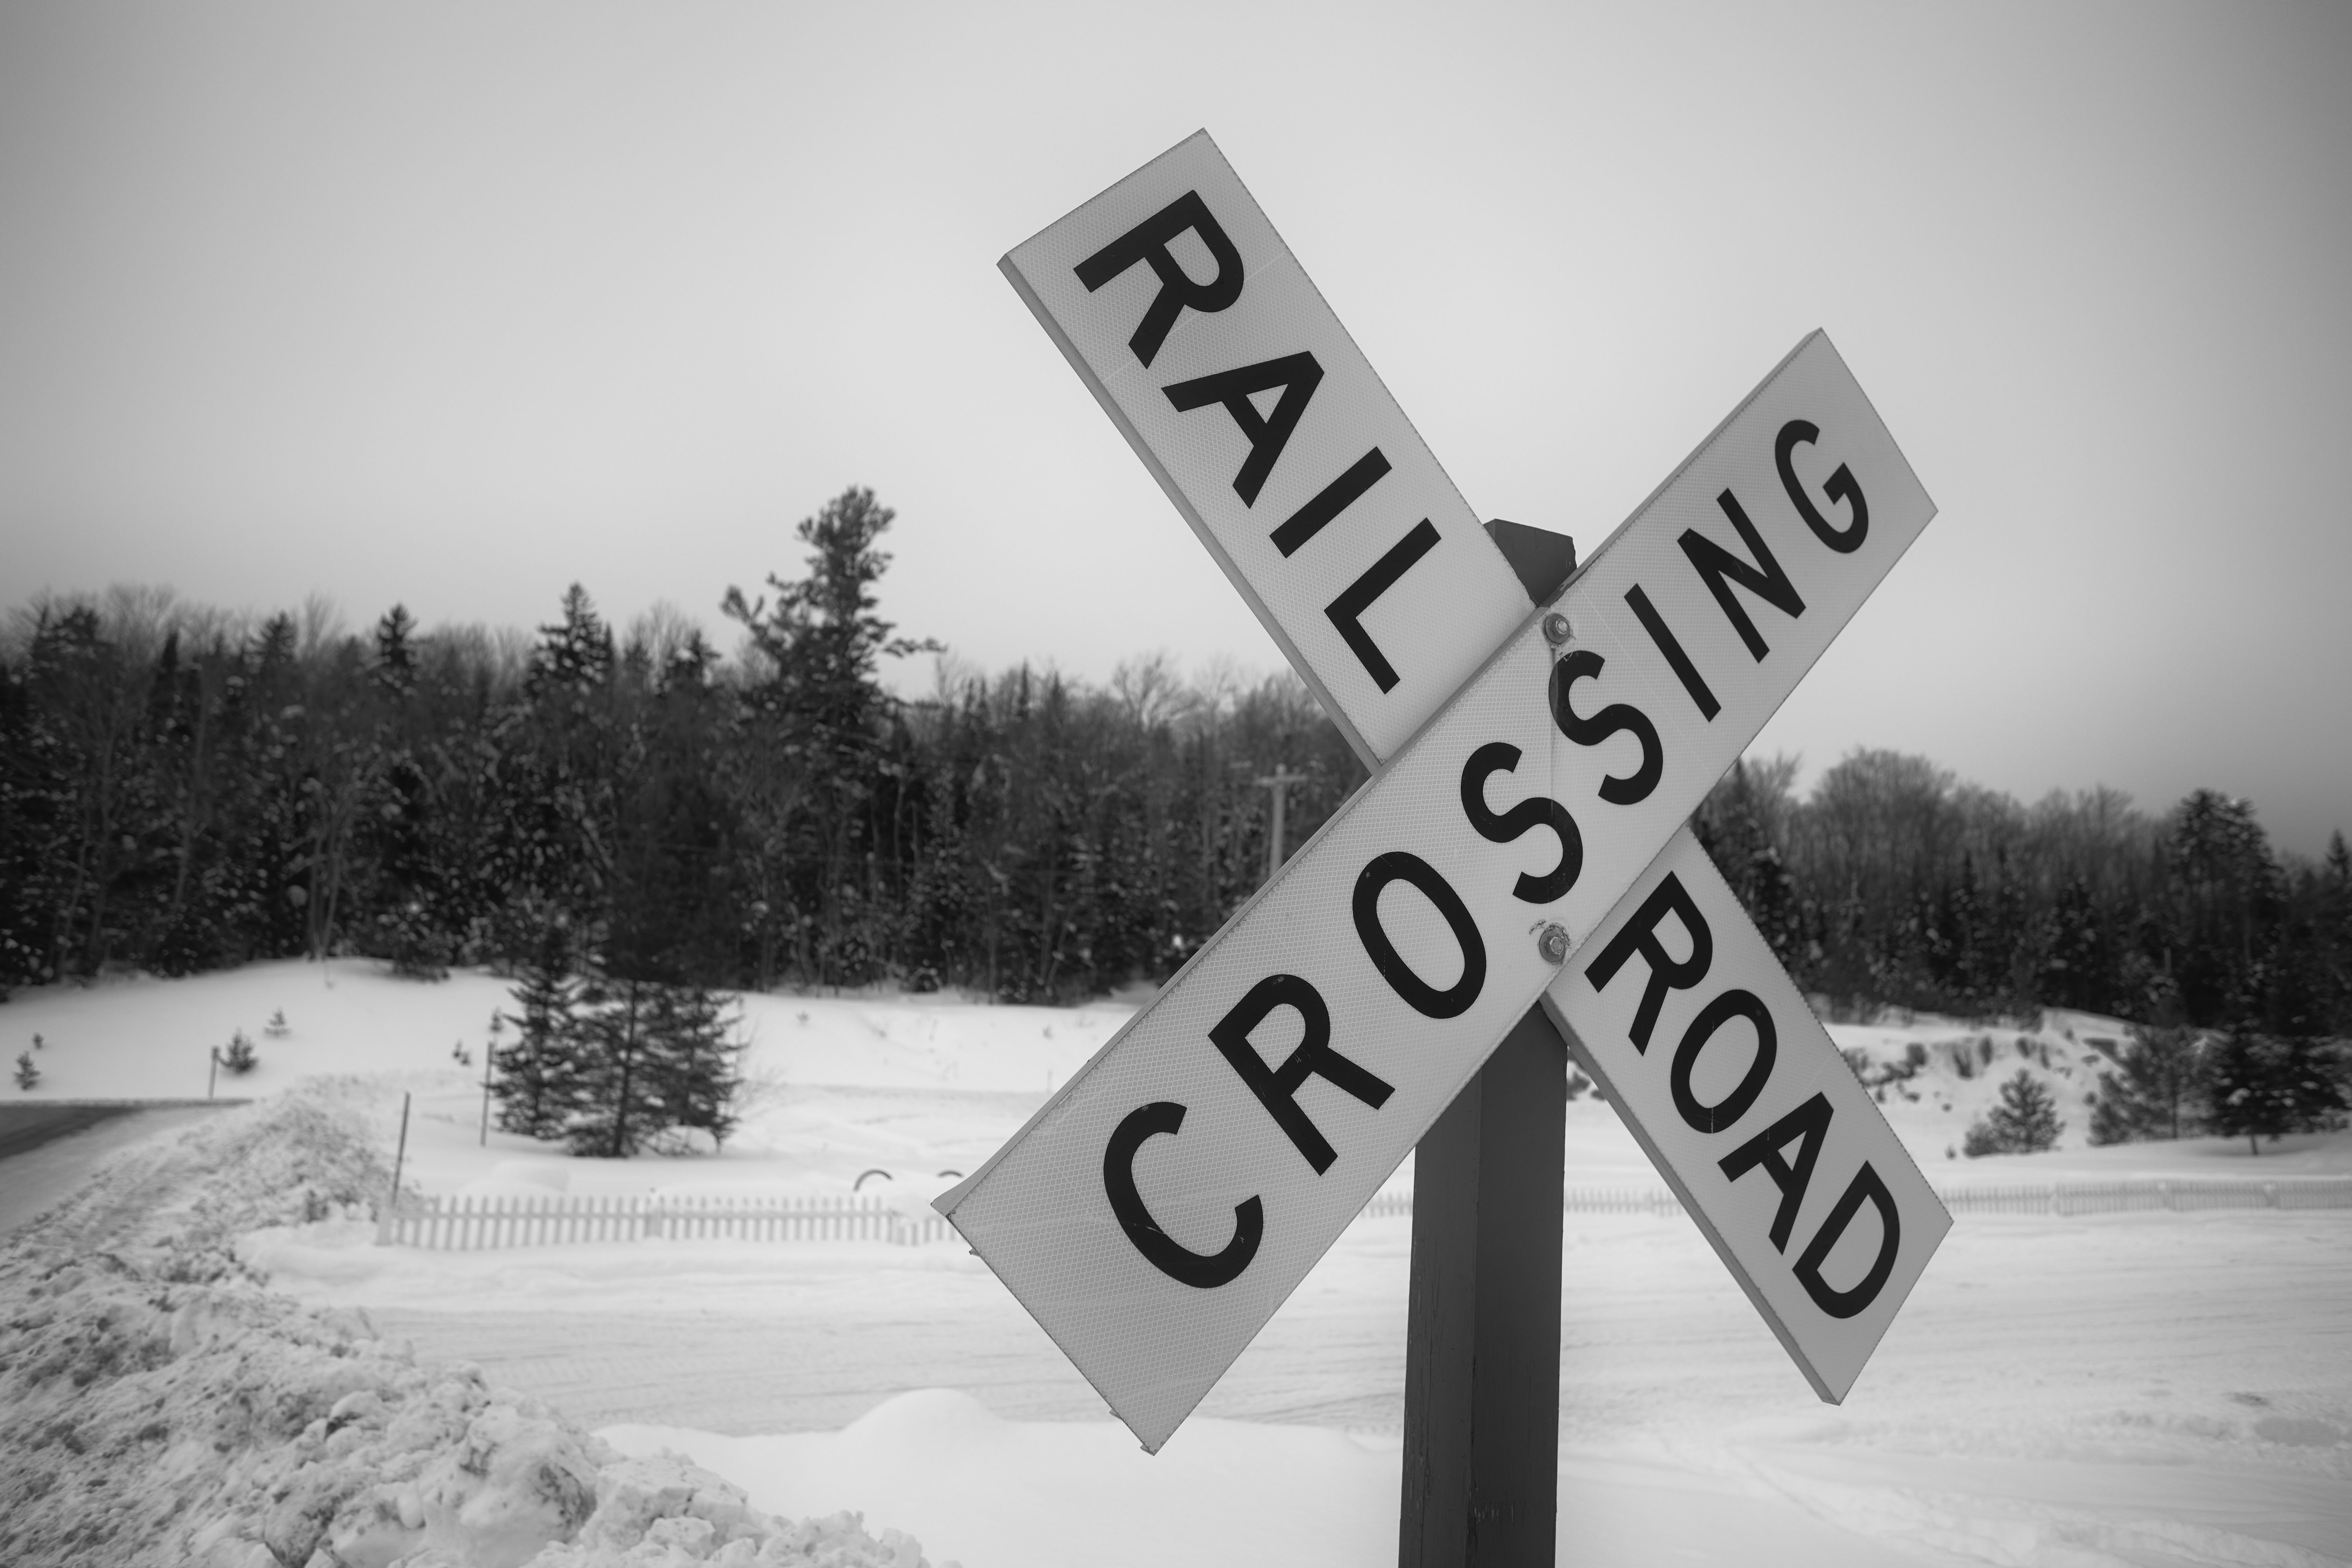 Black and white photo of railroad crossing sign with trees in distance.